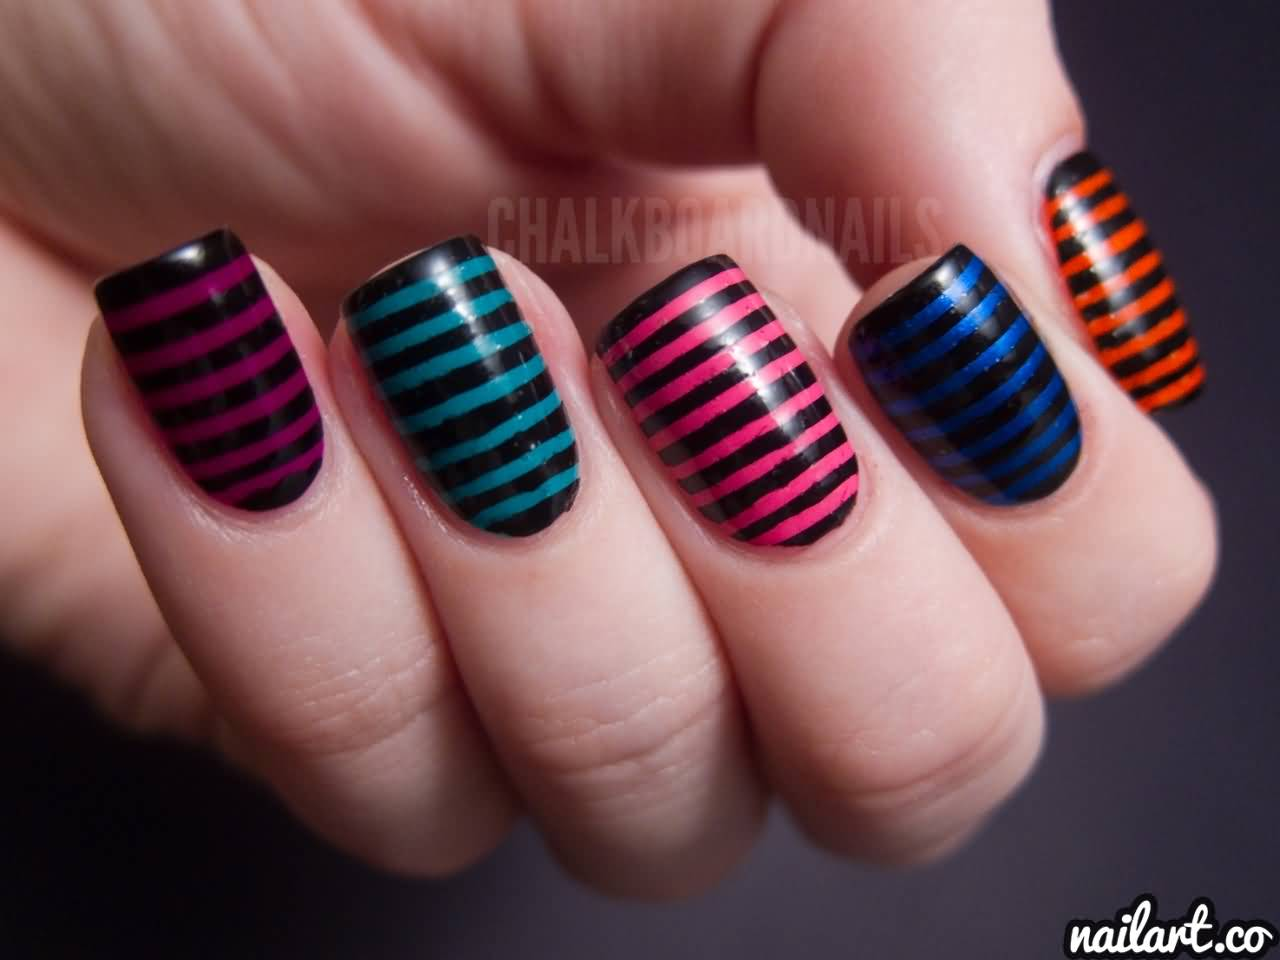 Multicolor nails with black stripes design nail art prinsesfo Choice Image